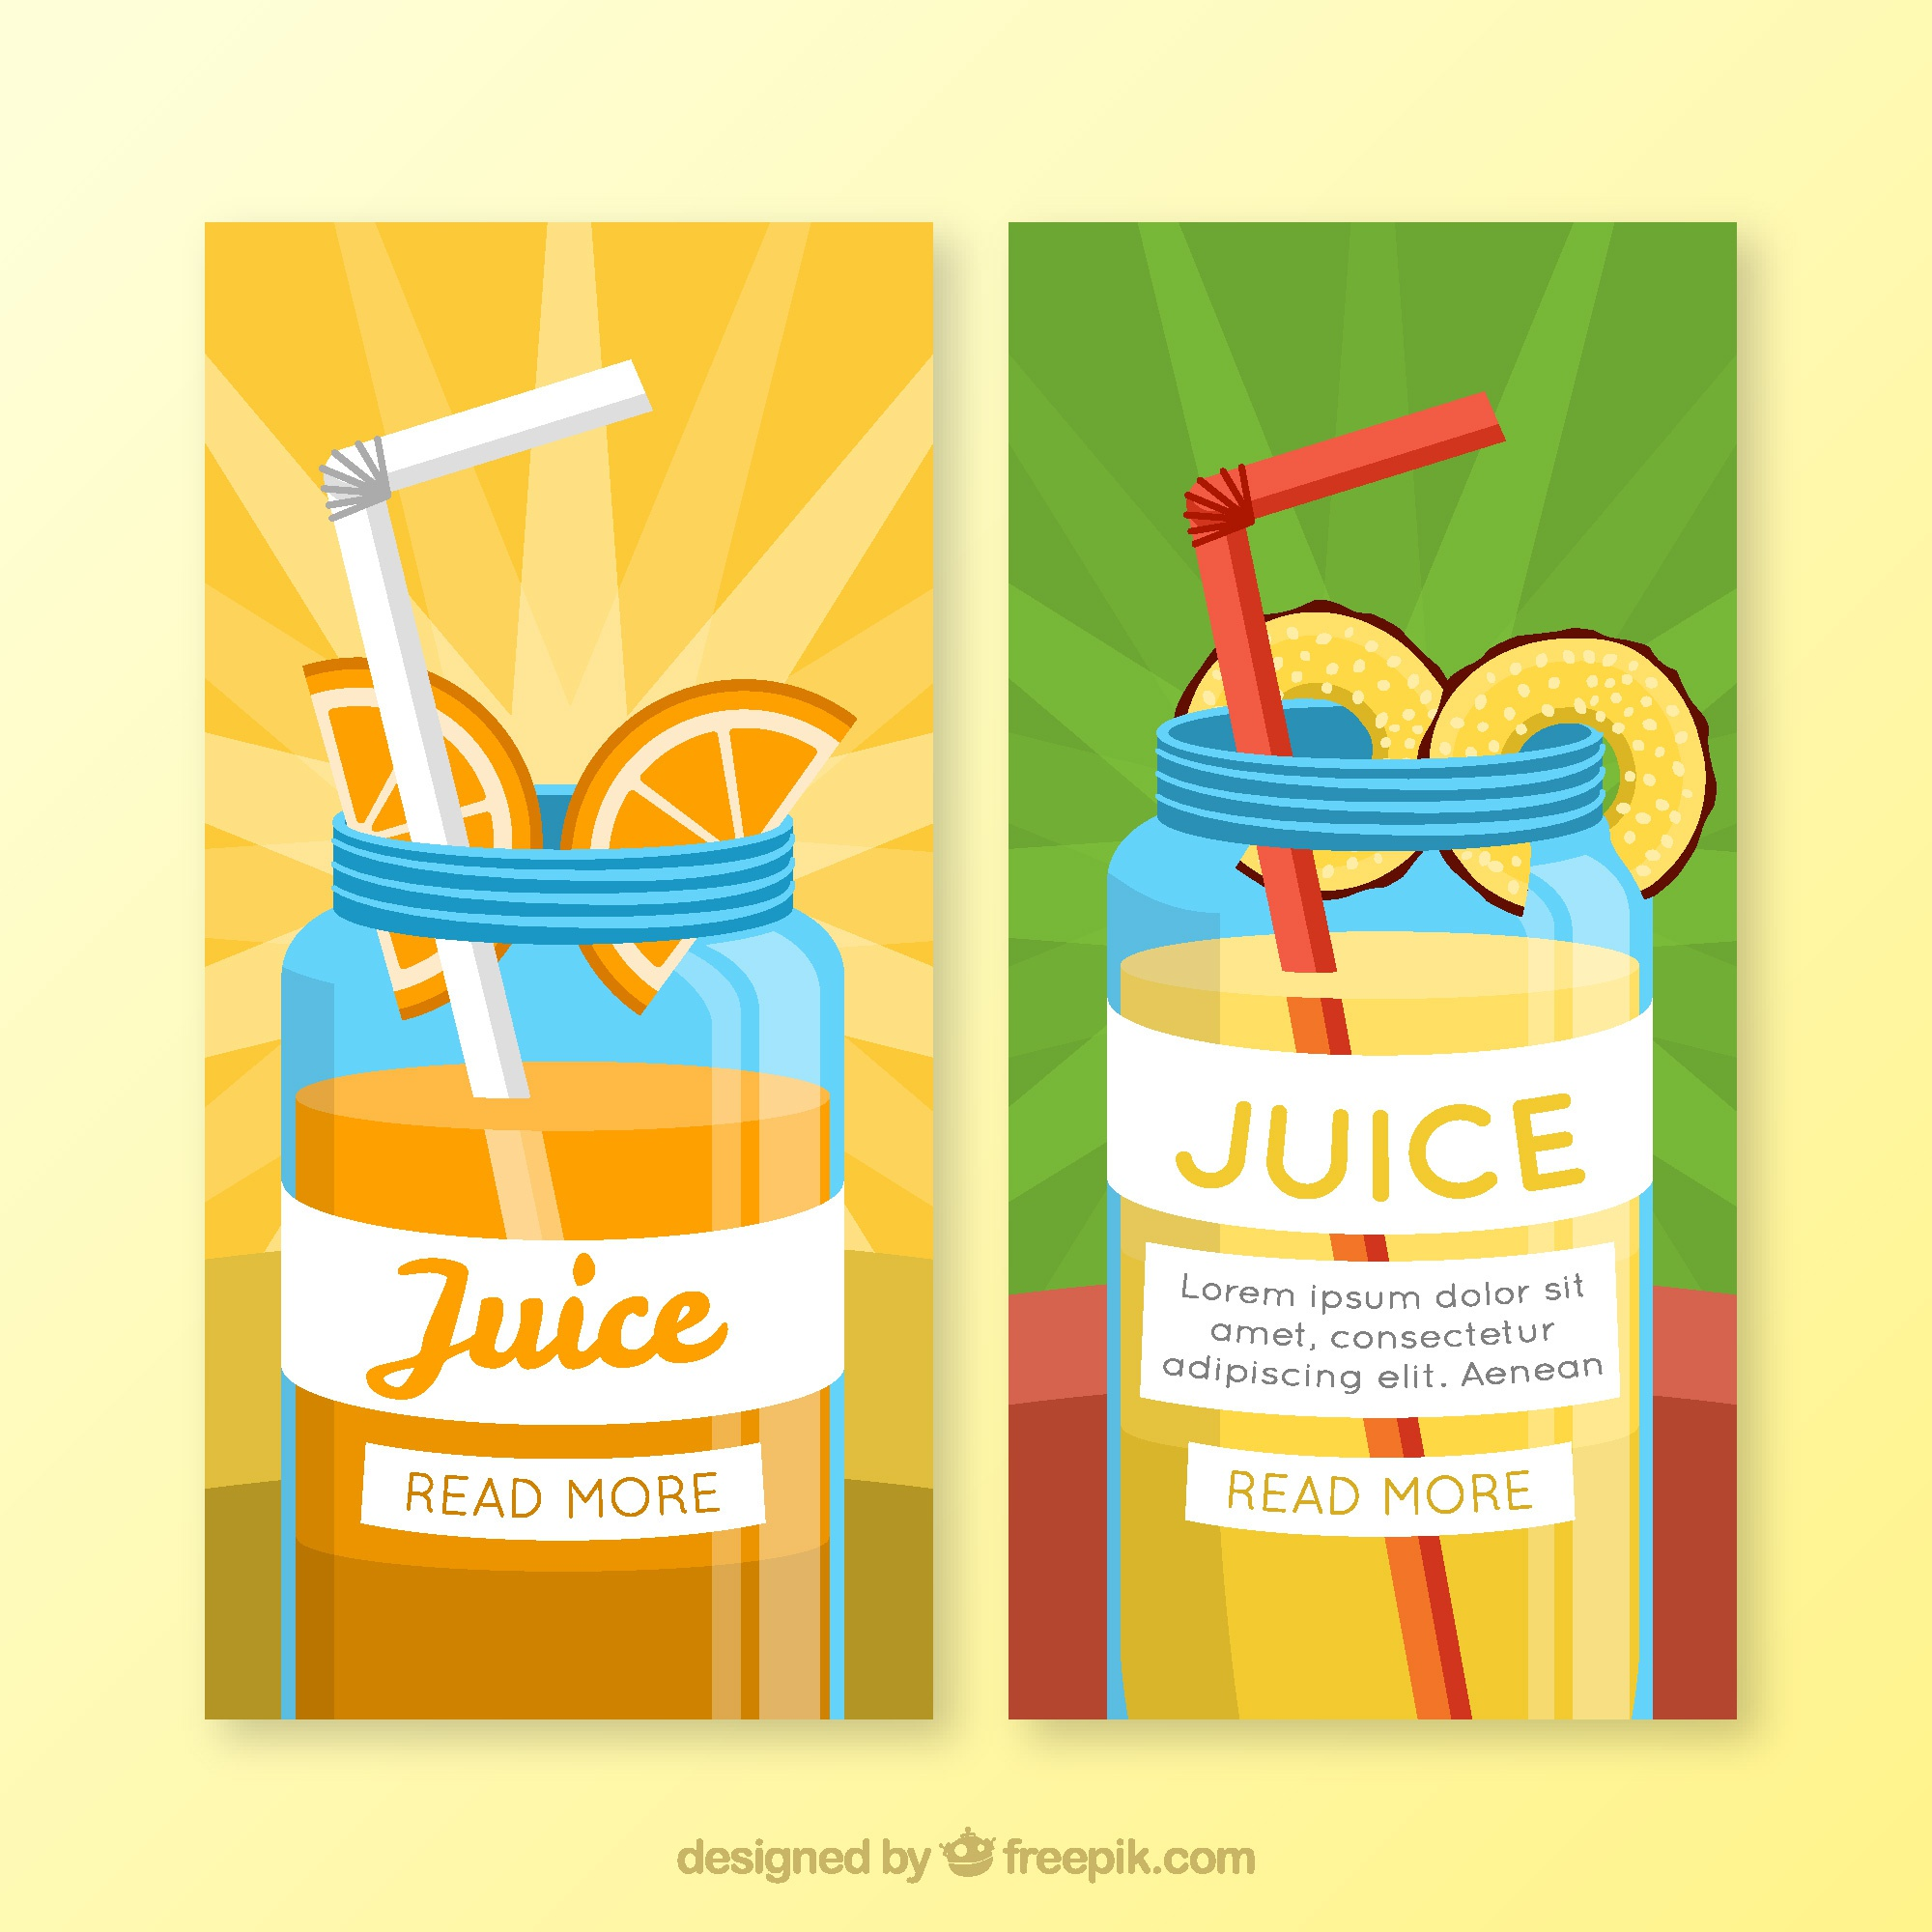 Fantastic banners of tasty fruit juices